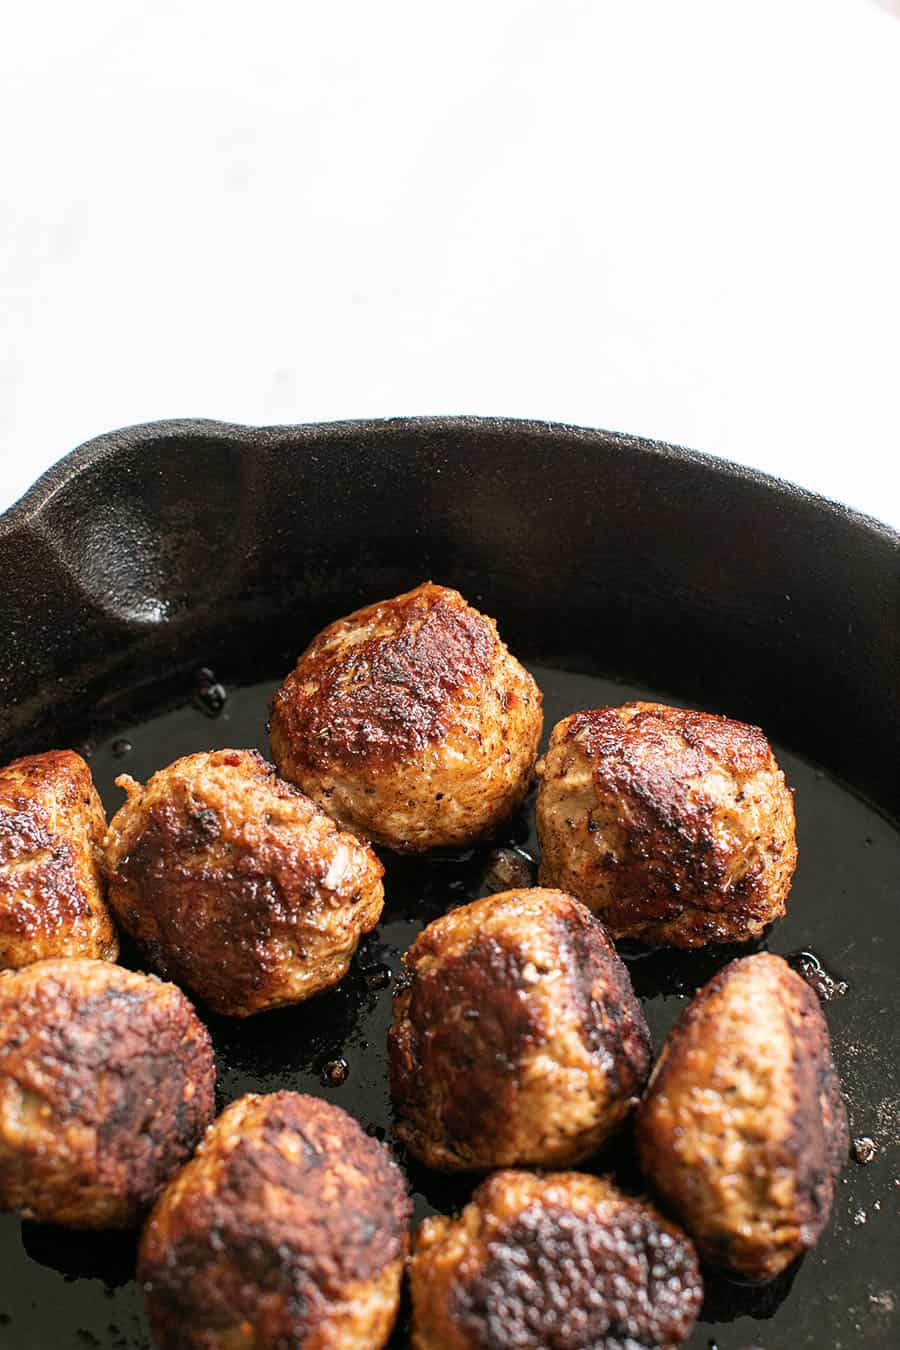 Golden brown meatballs in a cast iron pan.